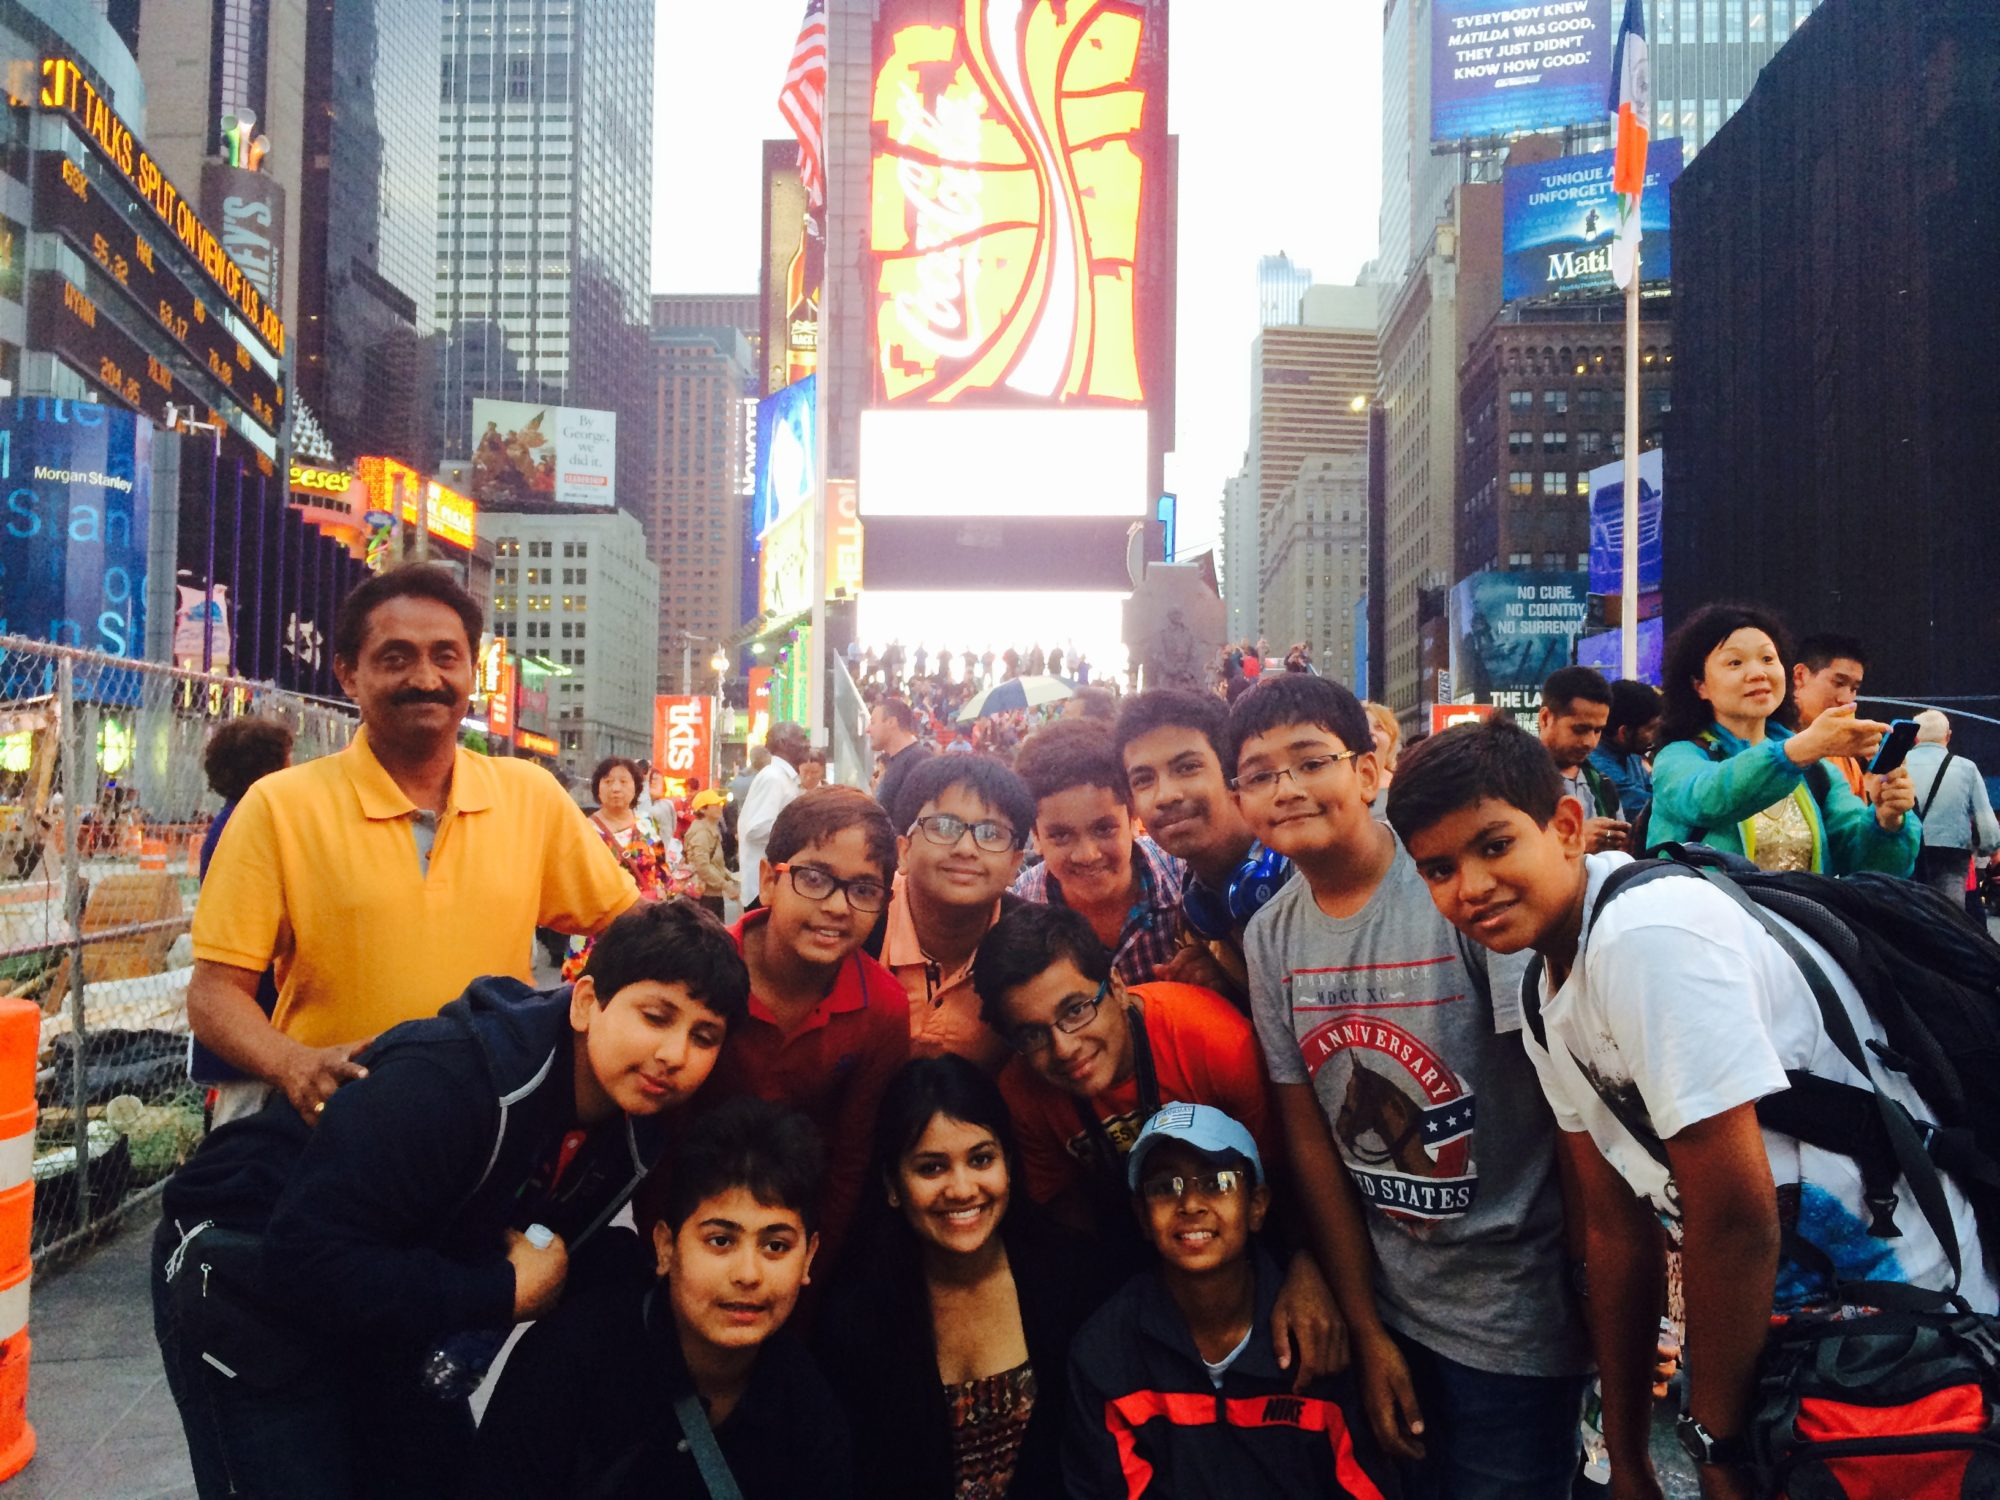 Students at Times Square